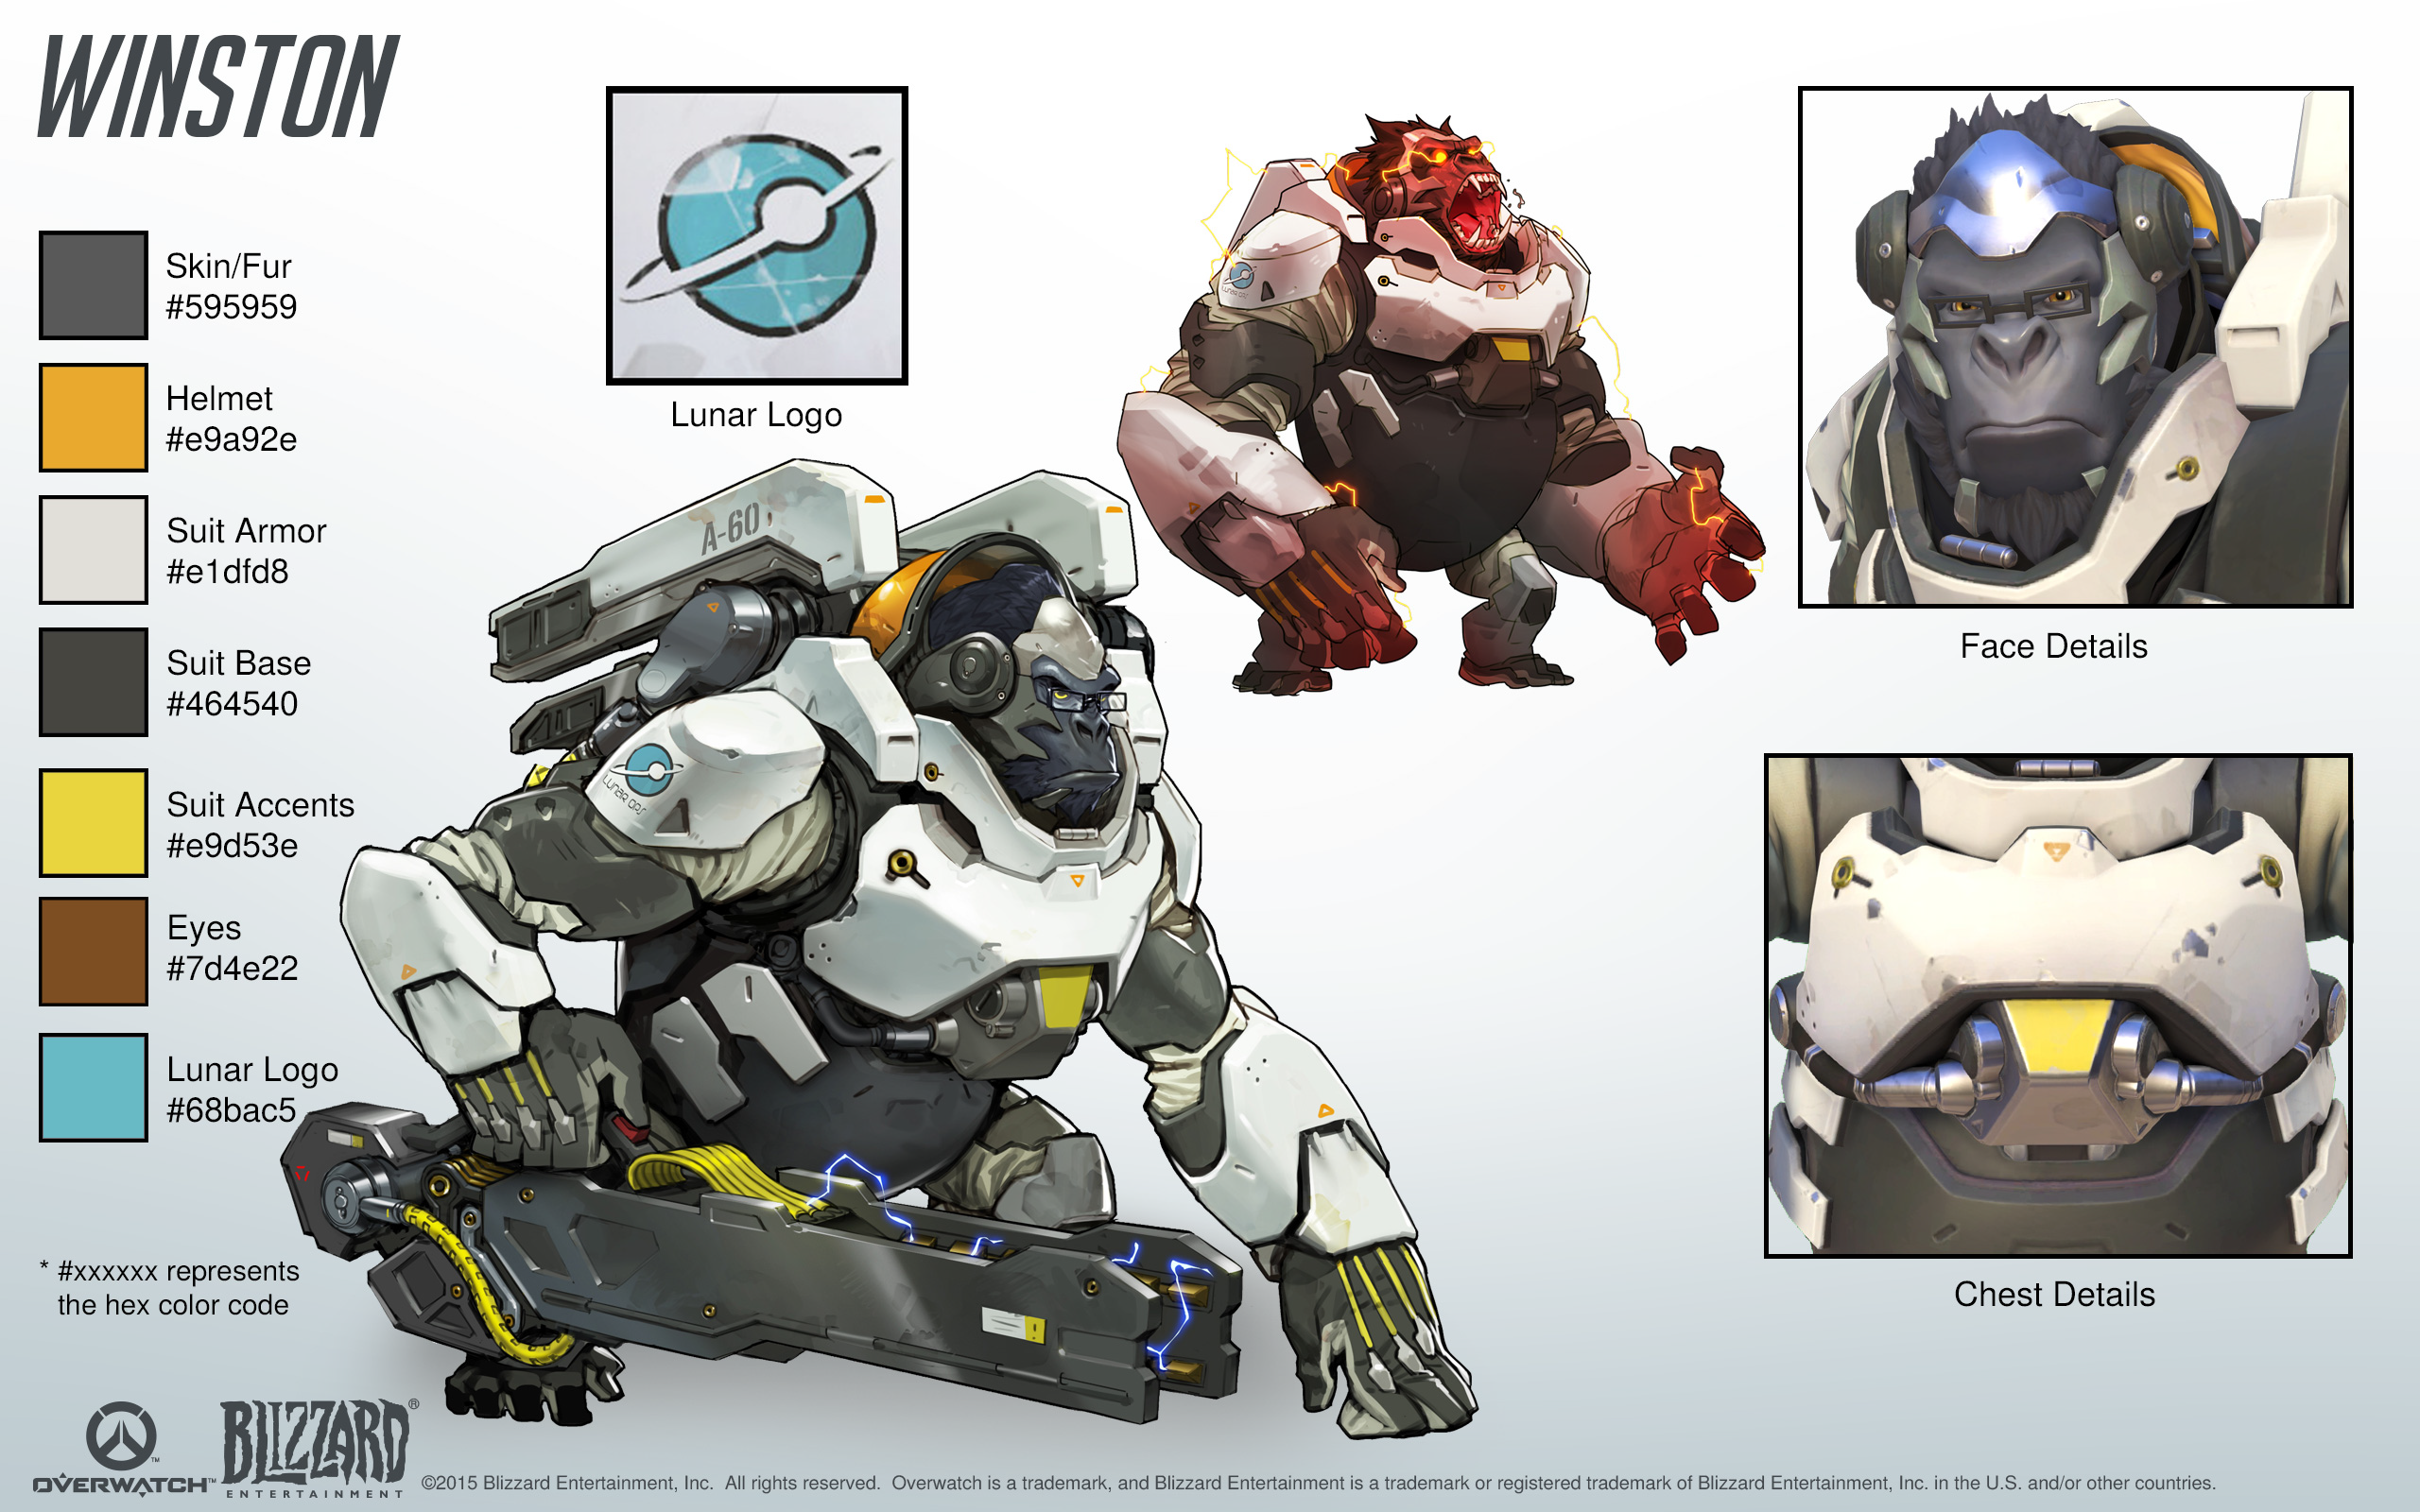 Image mei portrait png overwatch wiki fandom powered by wikia - Winston Cosplay Reference Guide 1 Overwatch